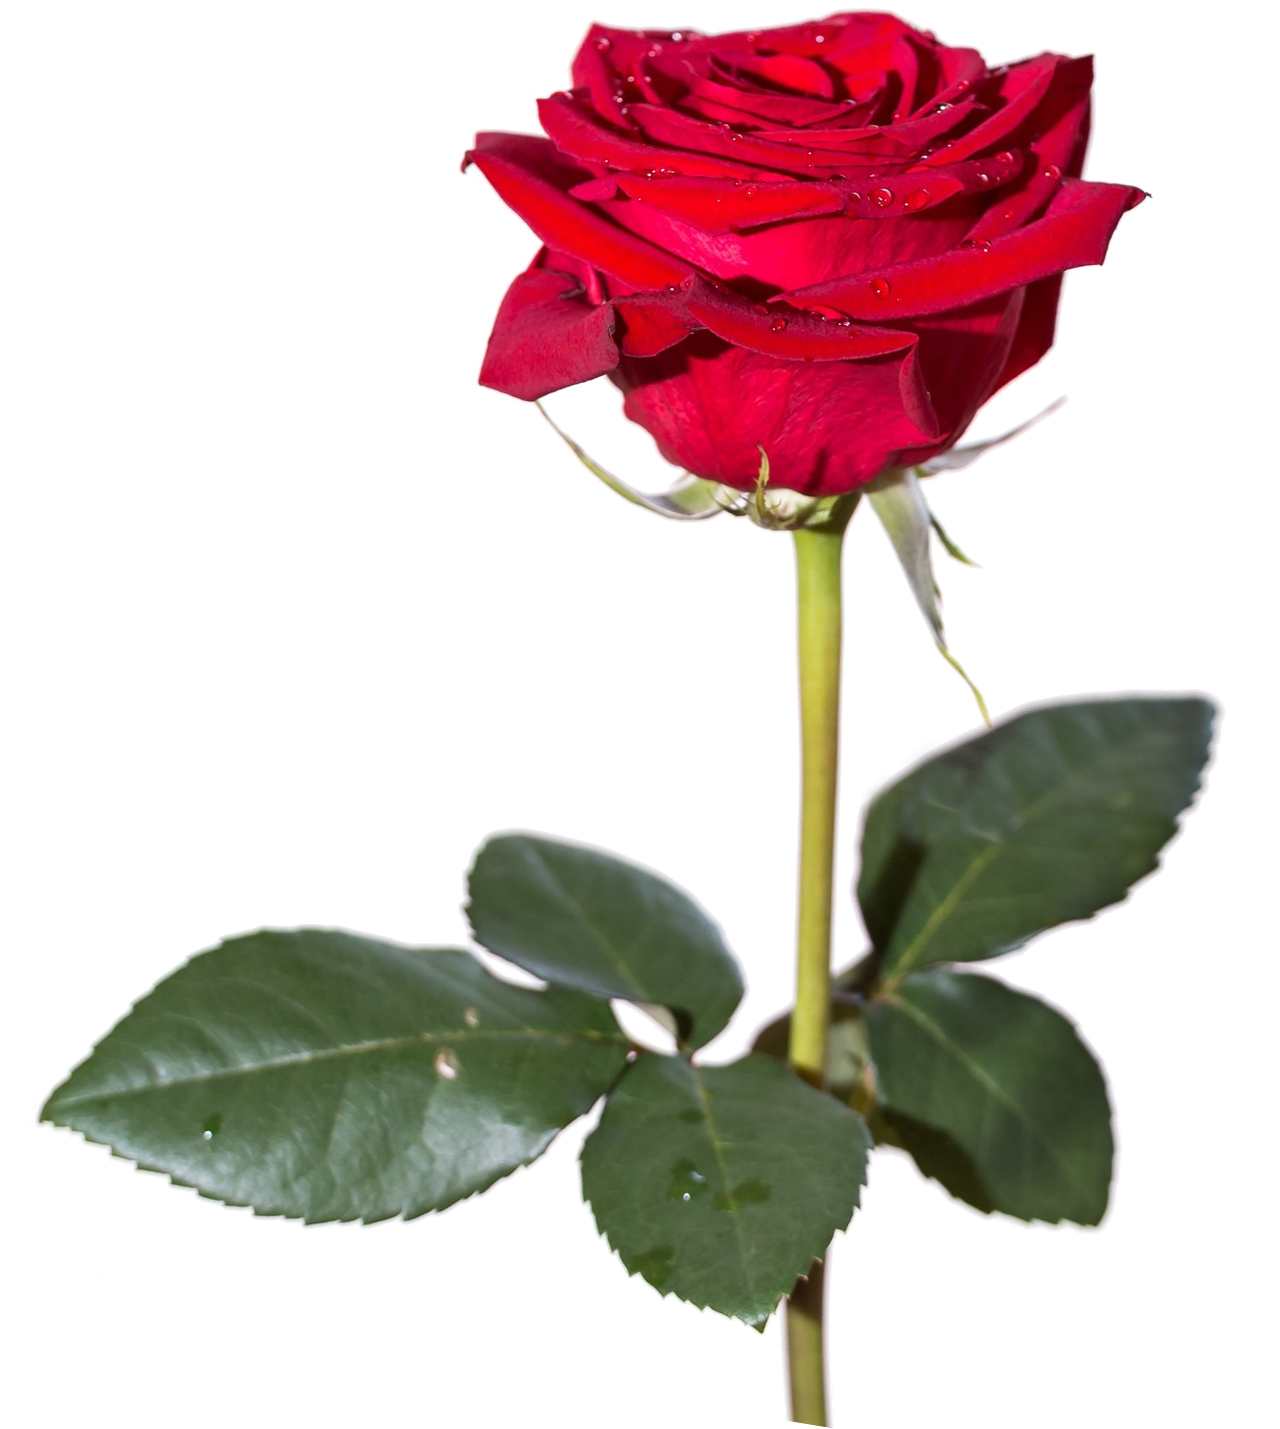 Rose png images. Hd transparent pluspng red